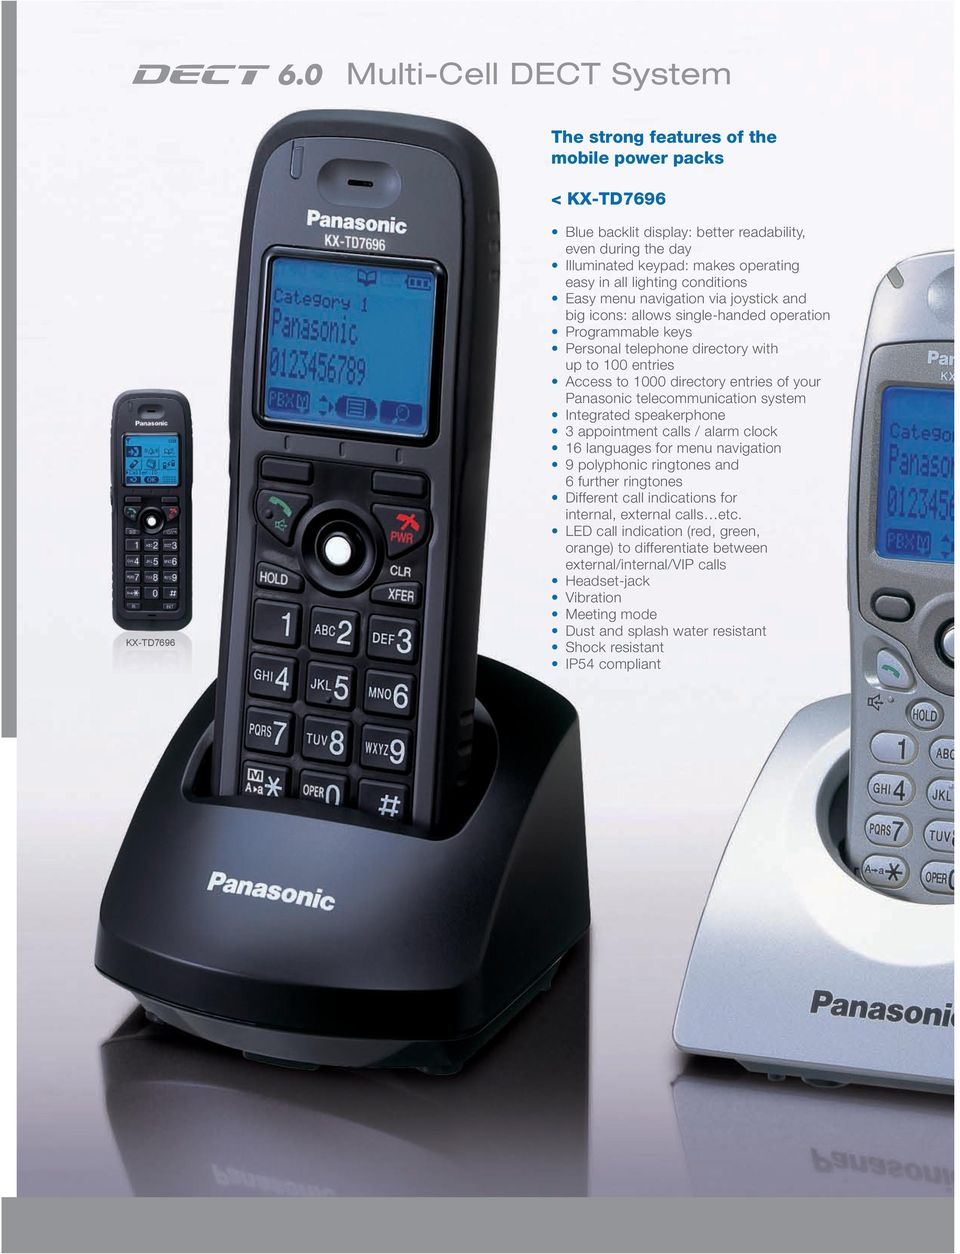 of your Panasonic telecommunication system Integrated speakerphone appointment calls / alarm clock 16 languages for menu navigation 9 polyphonic ringtones and 6 further ringtones Different call